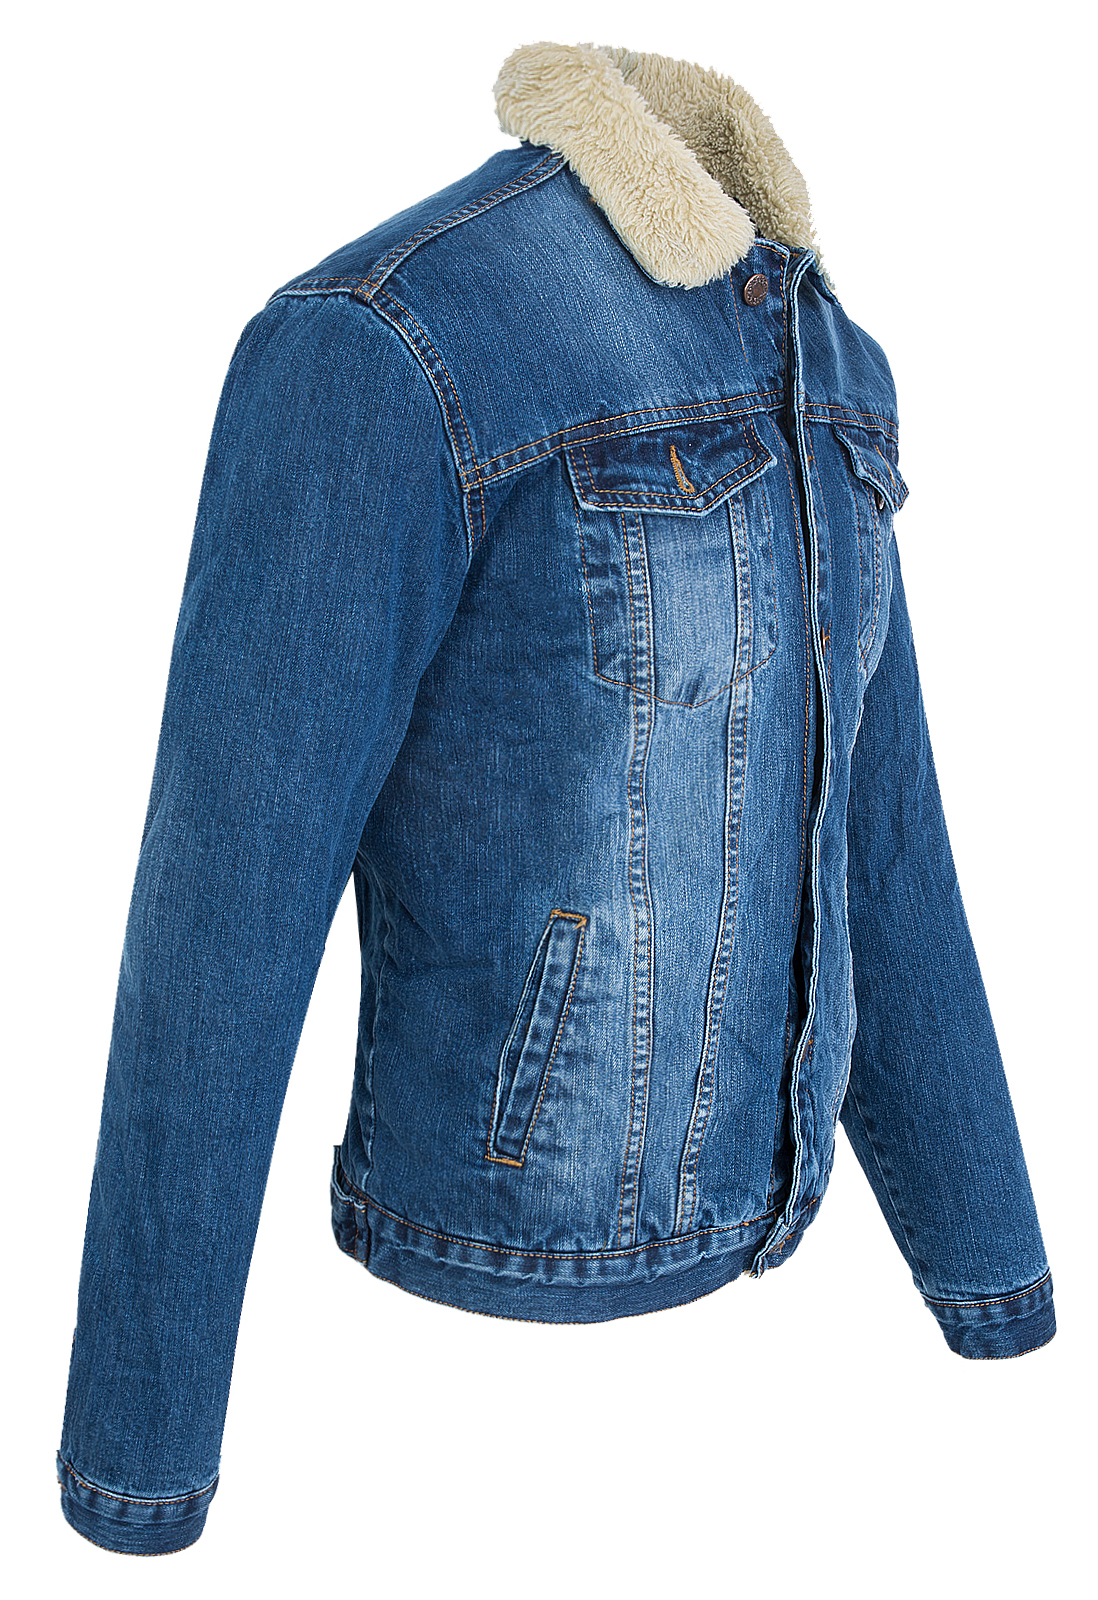 rock creek jeans jacke tedyfell winter jacke s m l xl xxl 3xl 4xl 5xl rc 2041 ebay. Black Bedroom Furniture Sets. Home Design Ideas